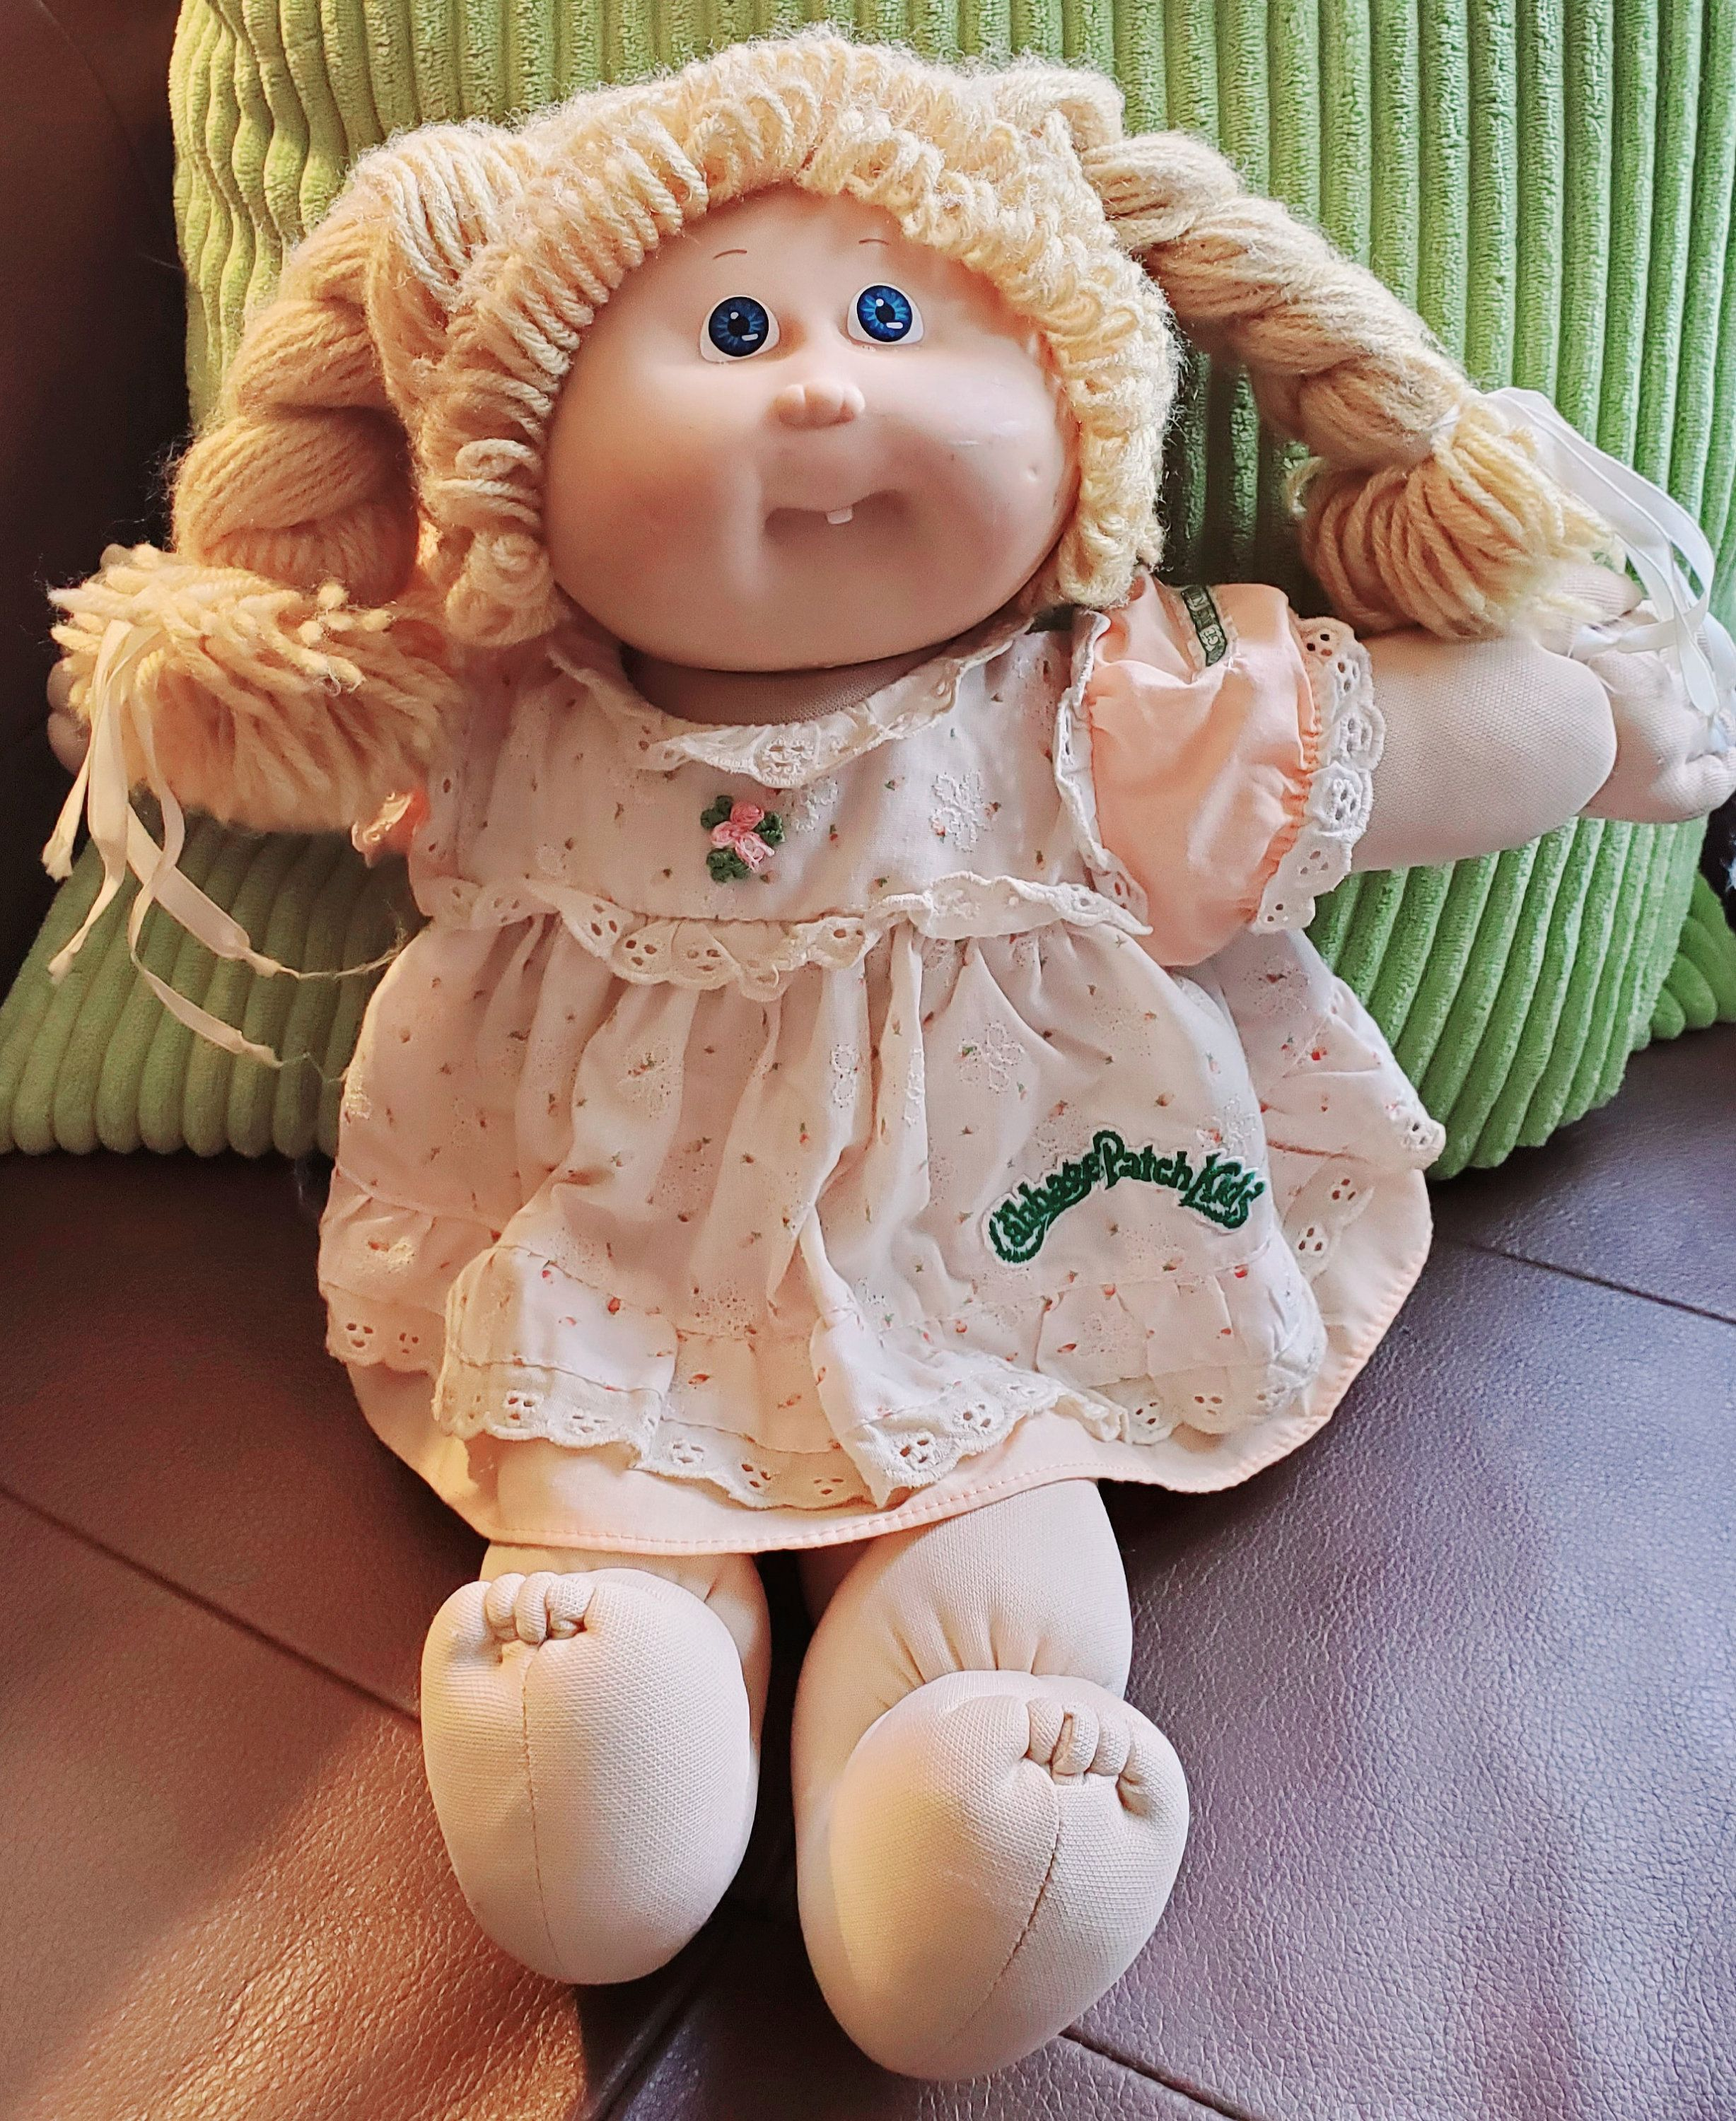 1986 Cabbage Patch Kid Blonde Girl Doll W Tooth Coleco Cpk Etsy Cabbage Patch Kids Patch Kids Cabbage Patch Dolls